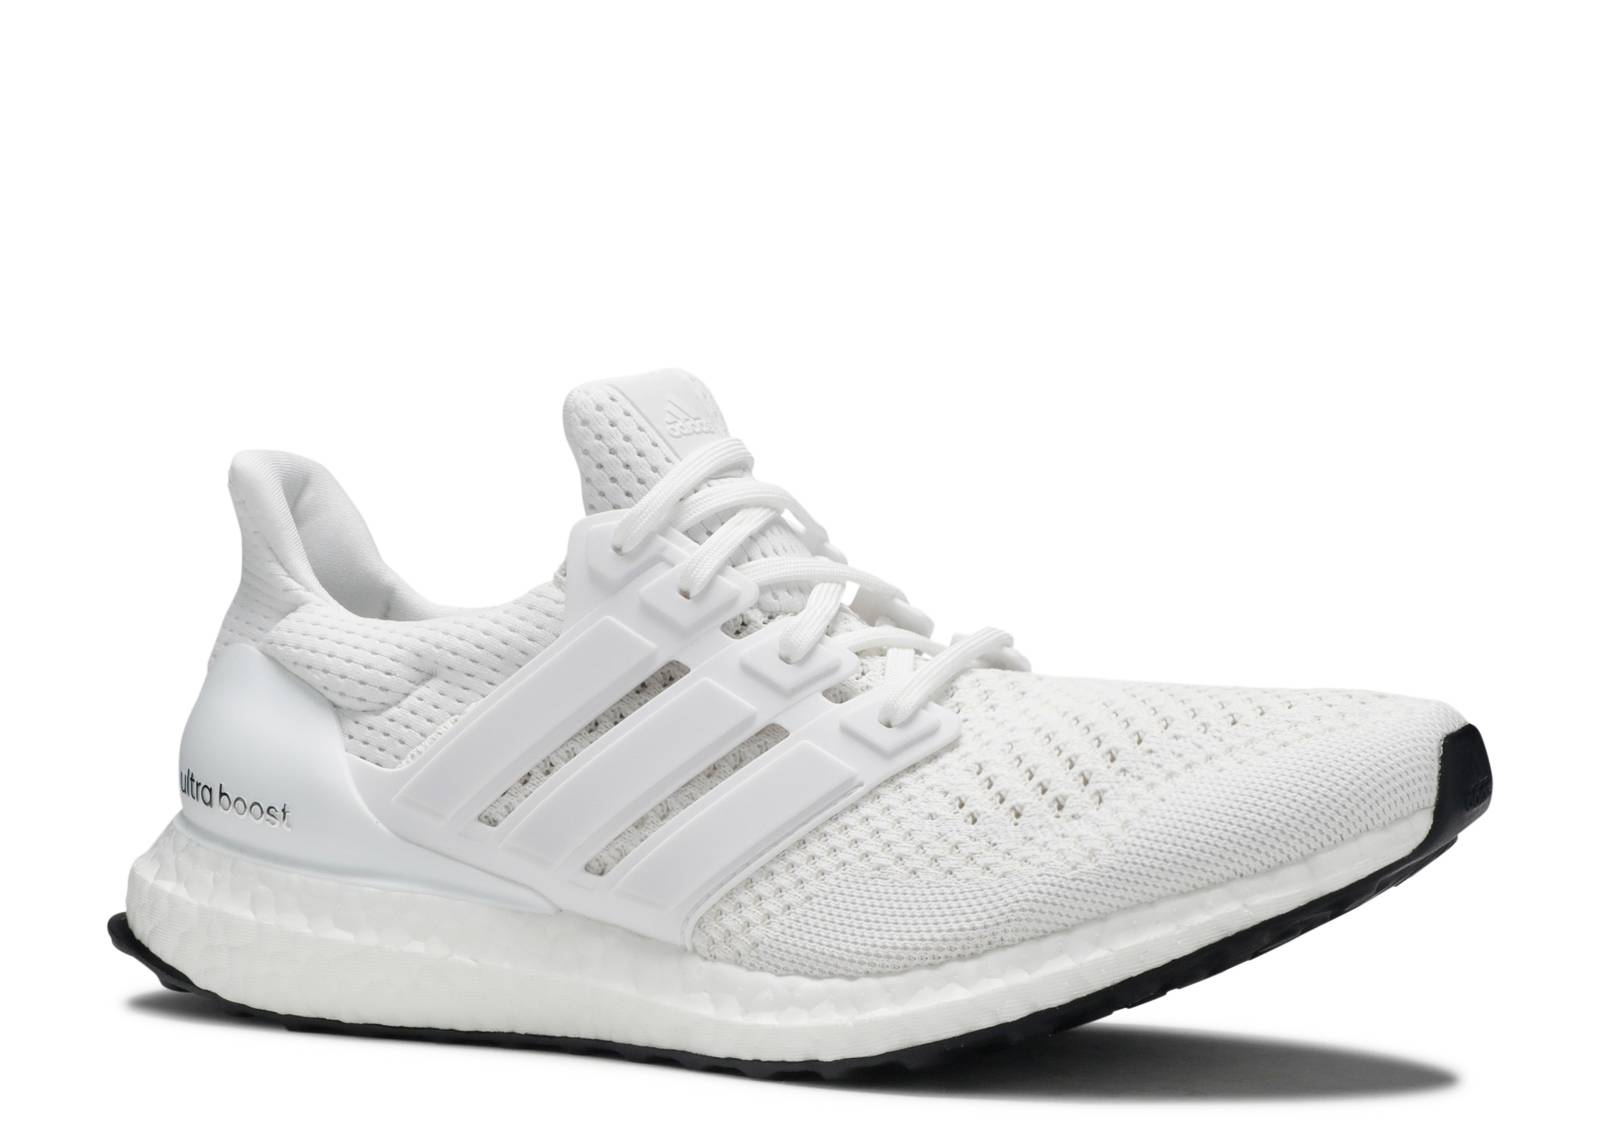 f46be8d4a32a8 Ultra Boost M - Adidas - s77416 - white white